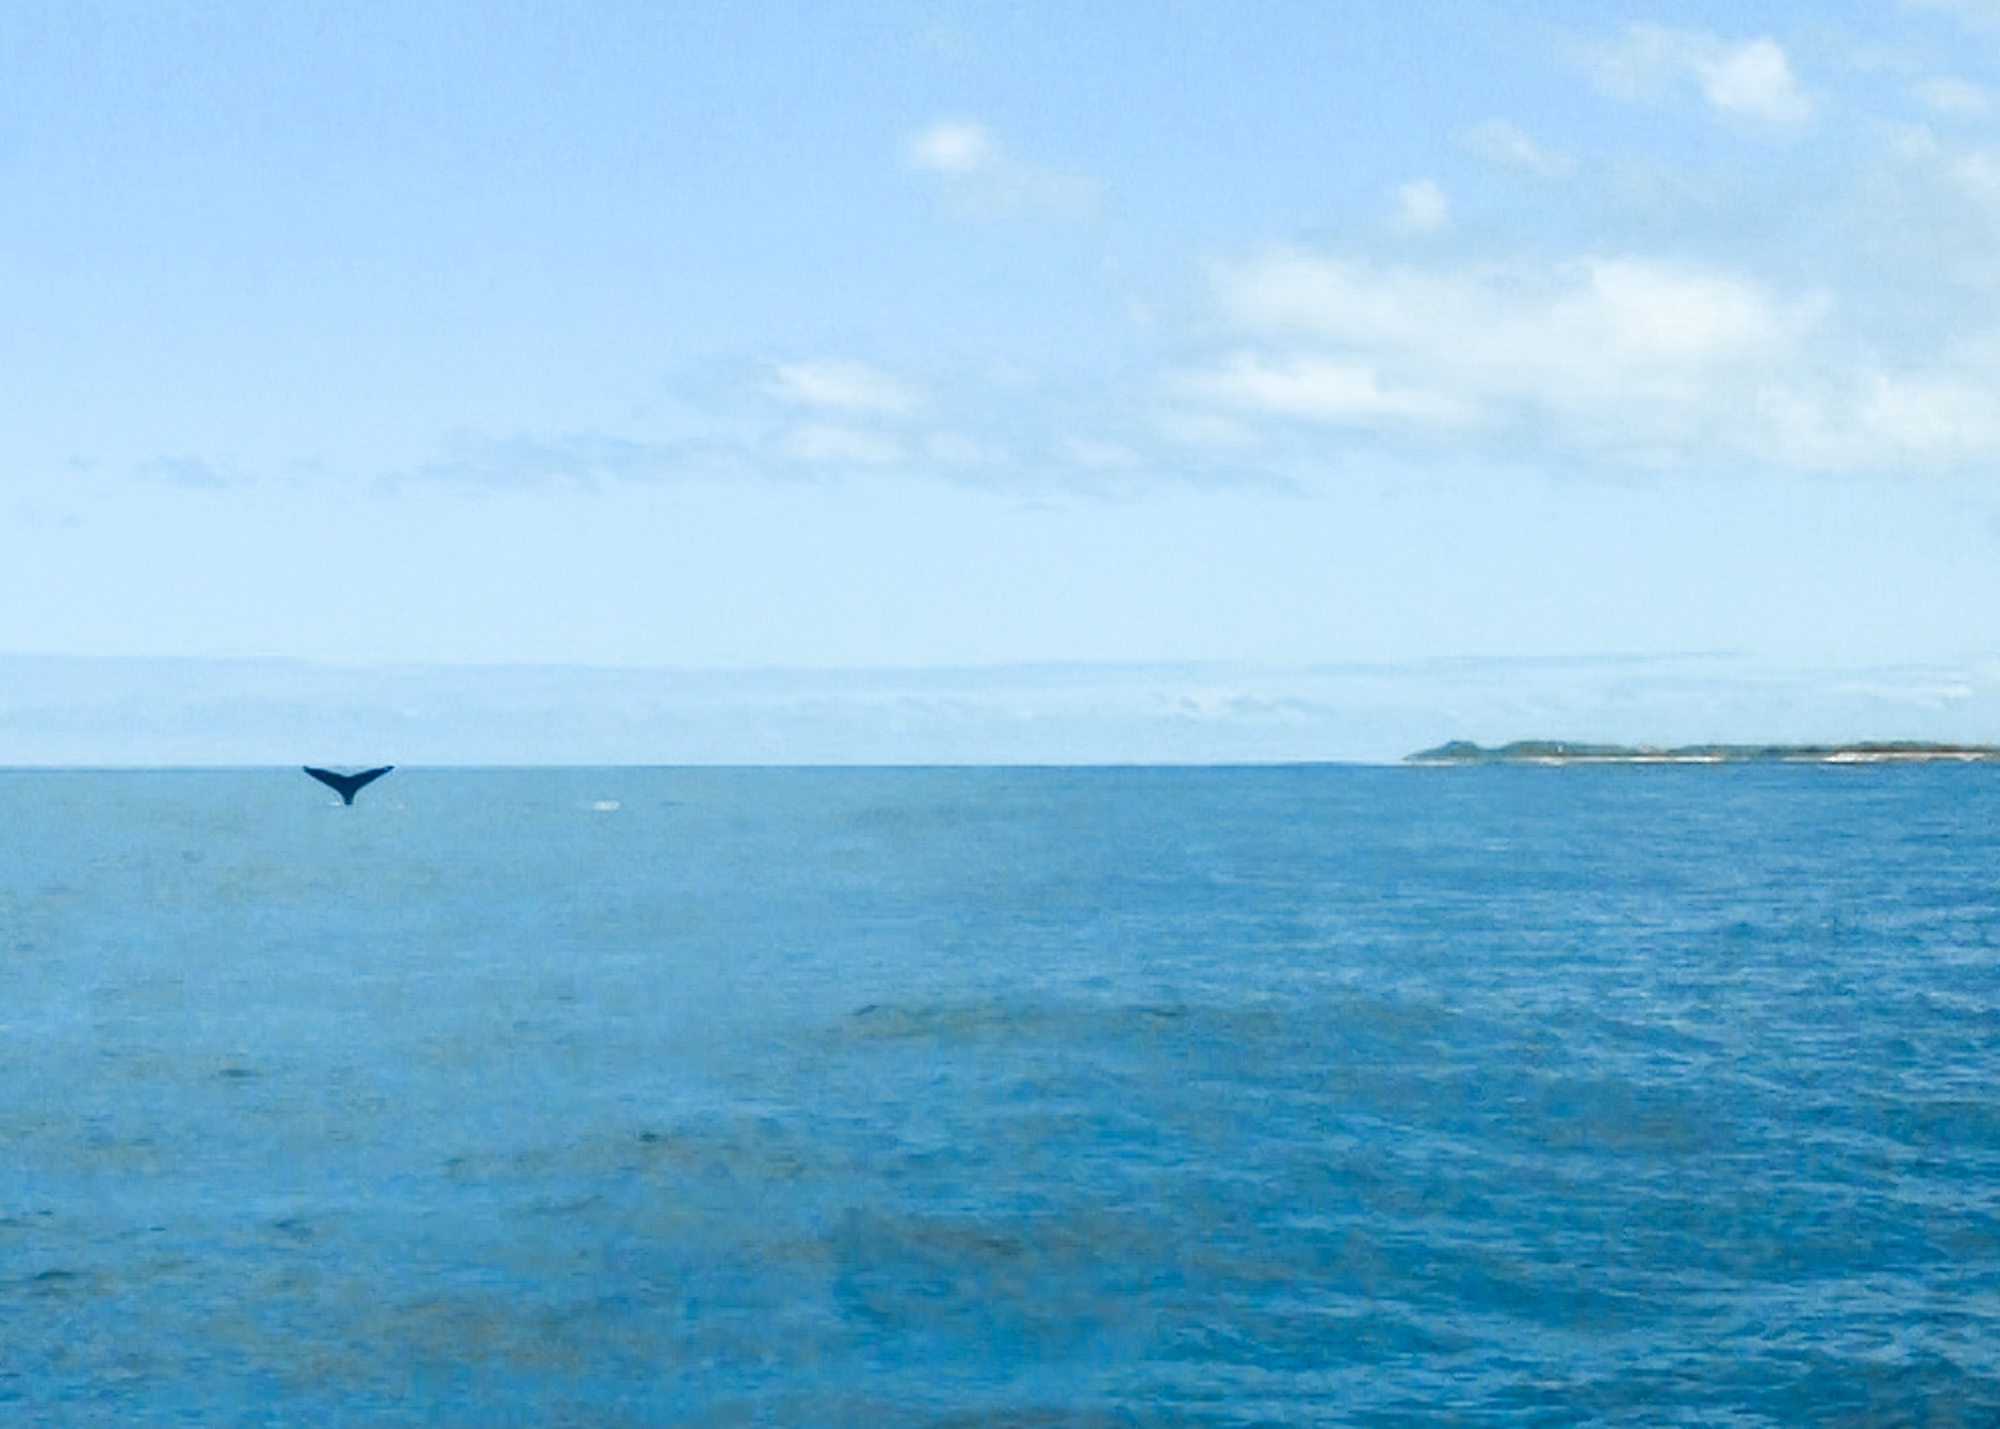 Humpback whale in Hawaii | Never Settle Travel